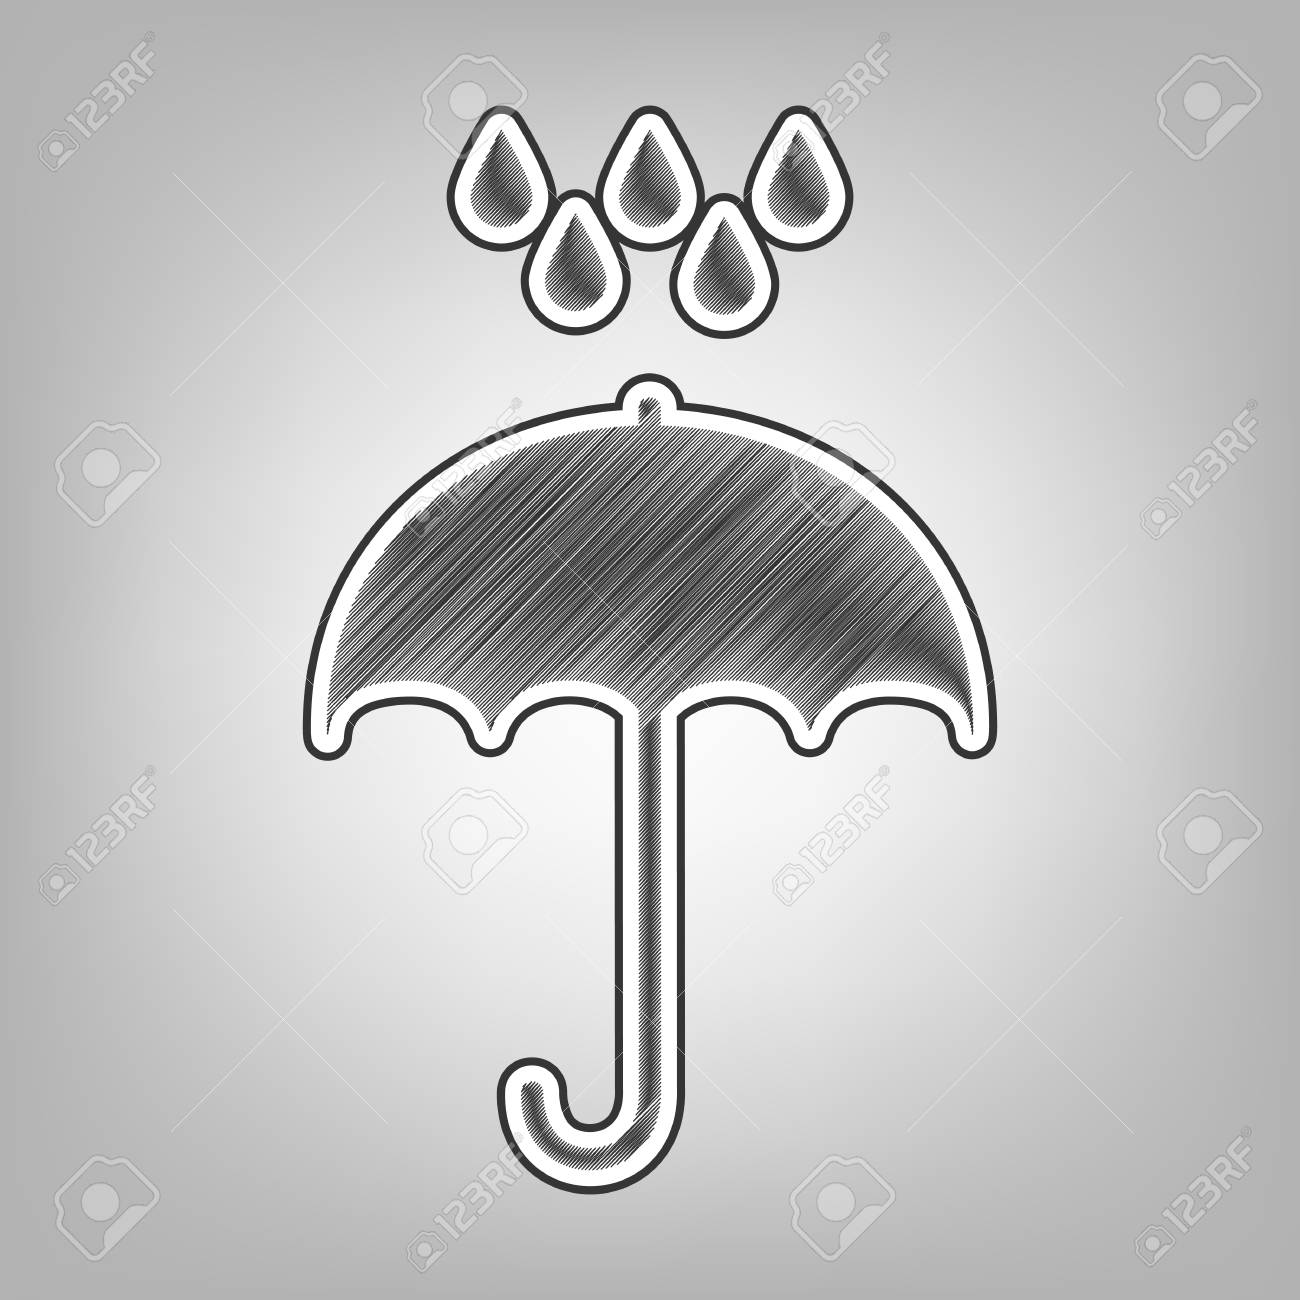 Umbrella with water drops rain protection symbol flat design style vector pencil